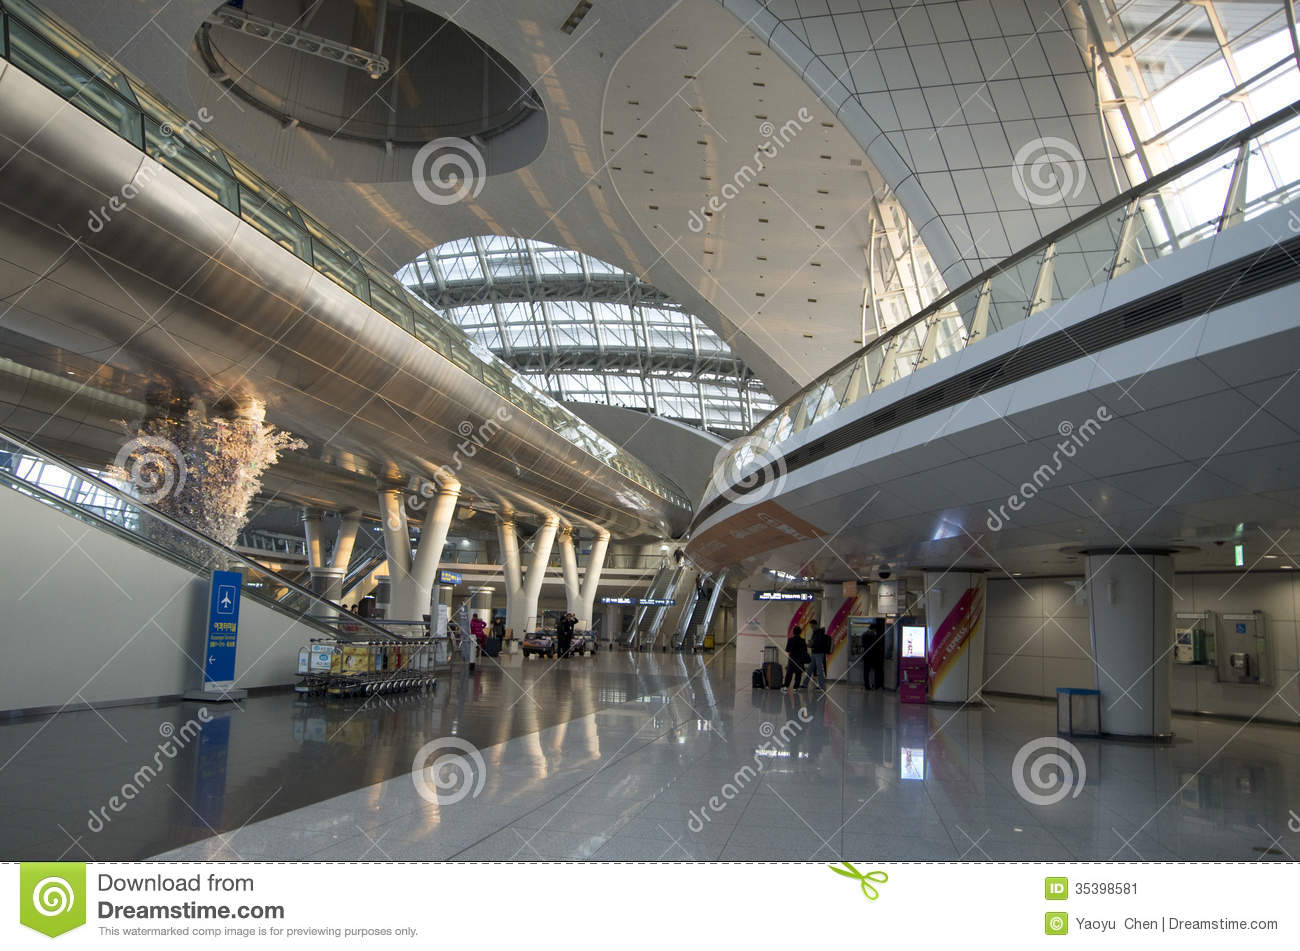 south korea airport 2 - photo #35